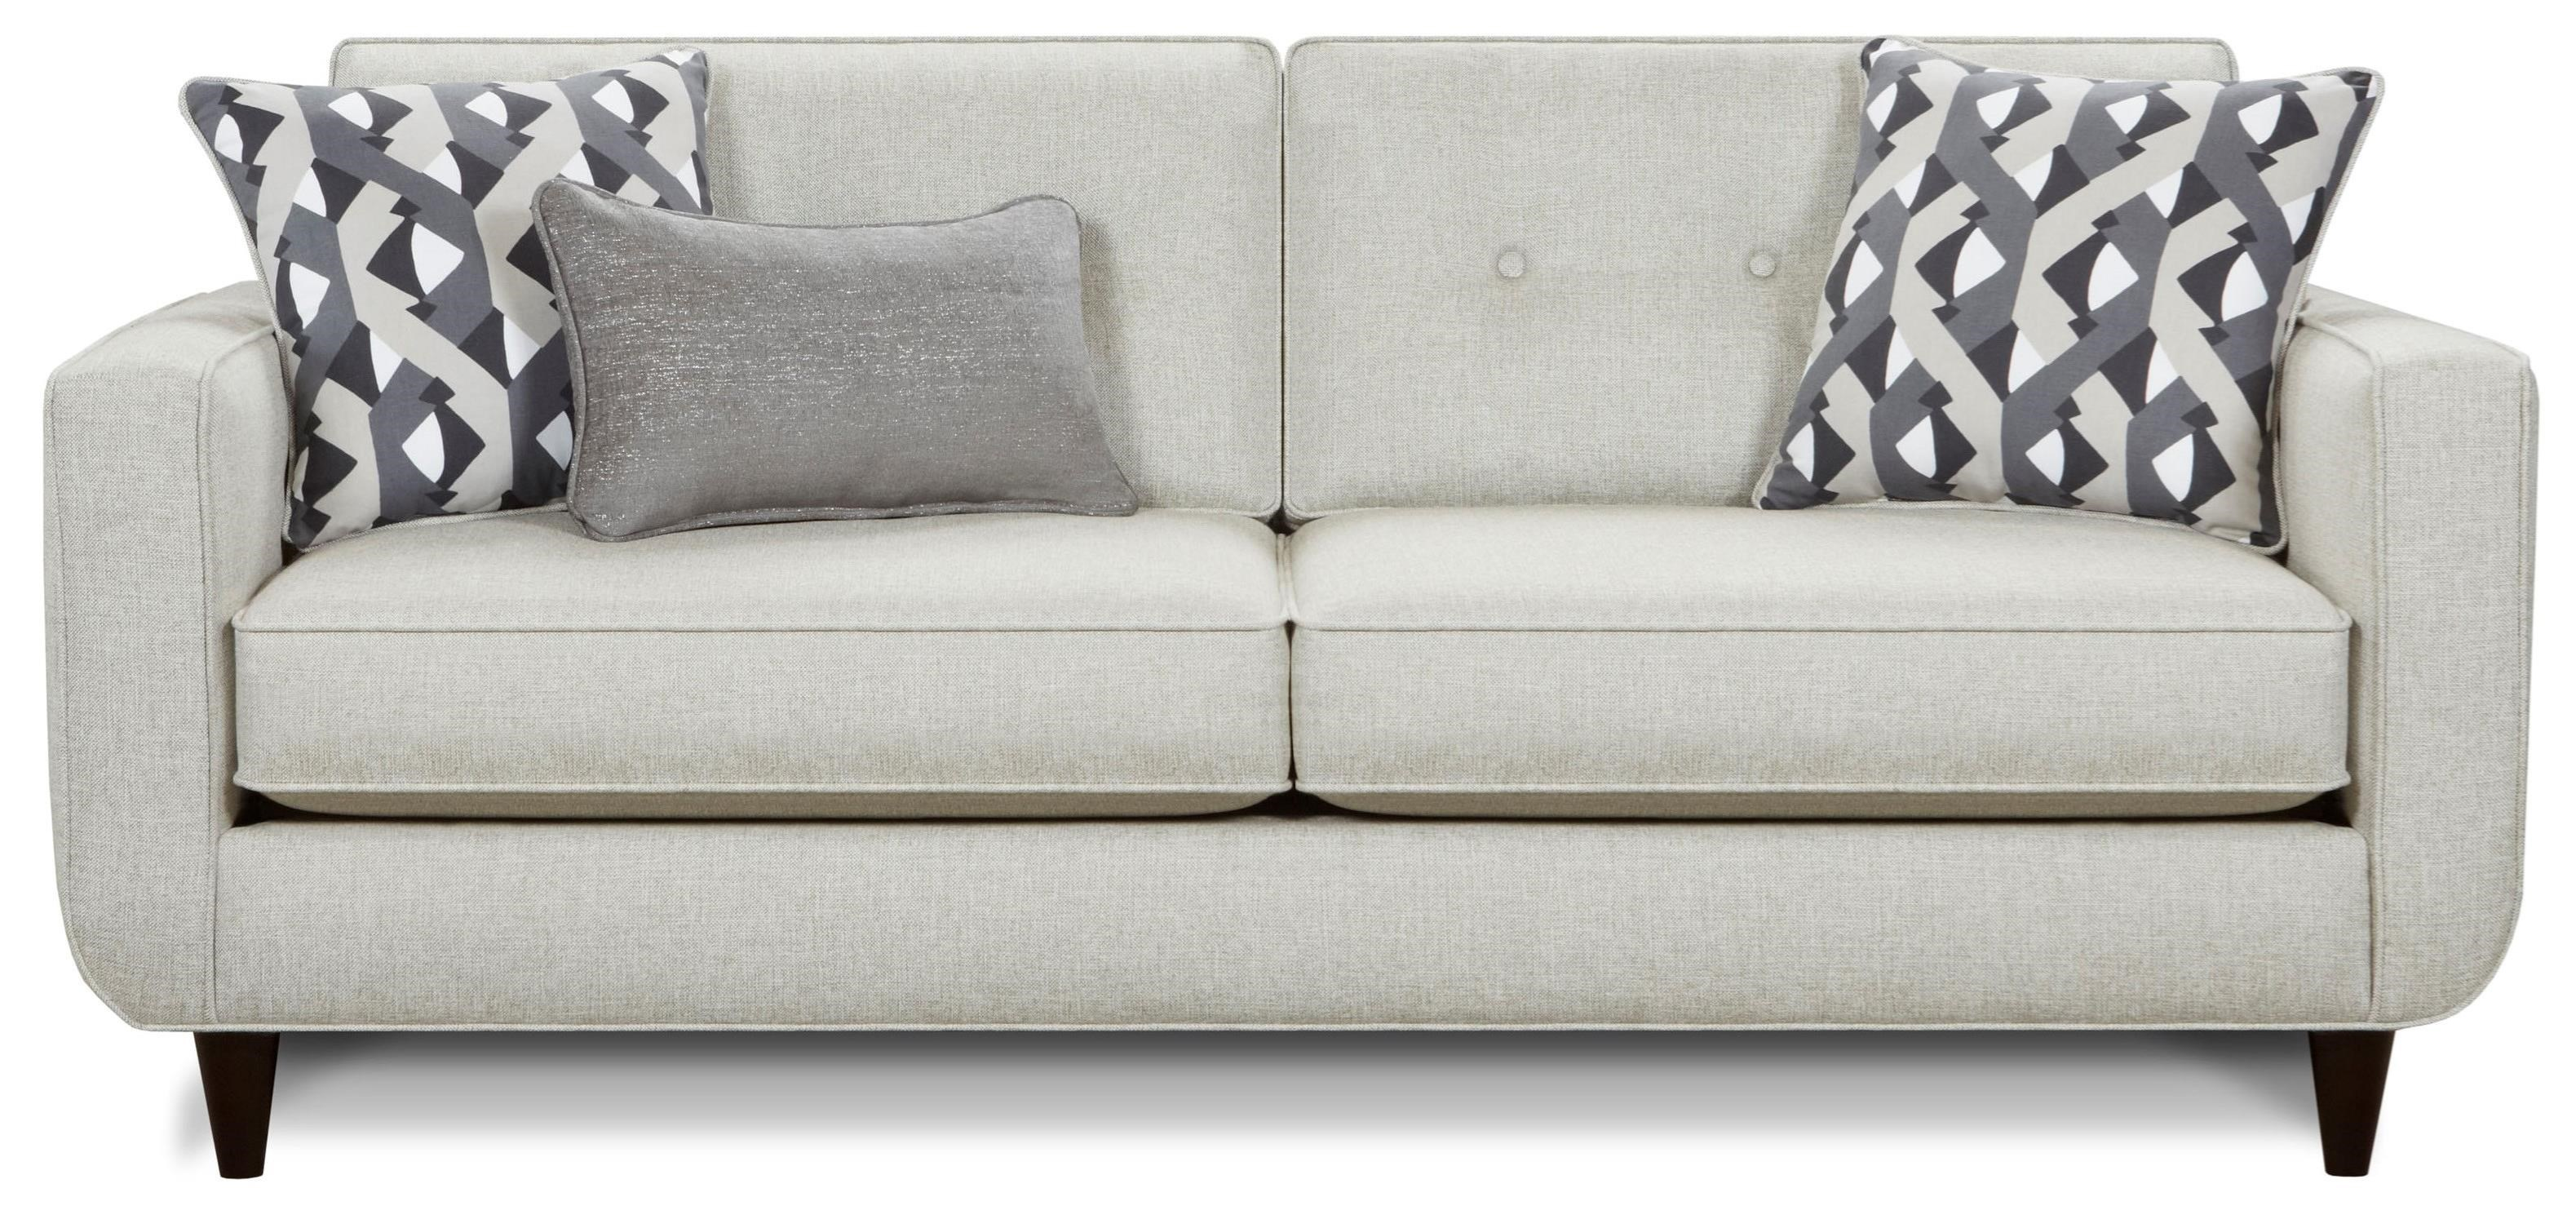 Fusion Furniture 1850 Sofa - Item Number: 1850-KPGrande Linen